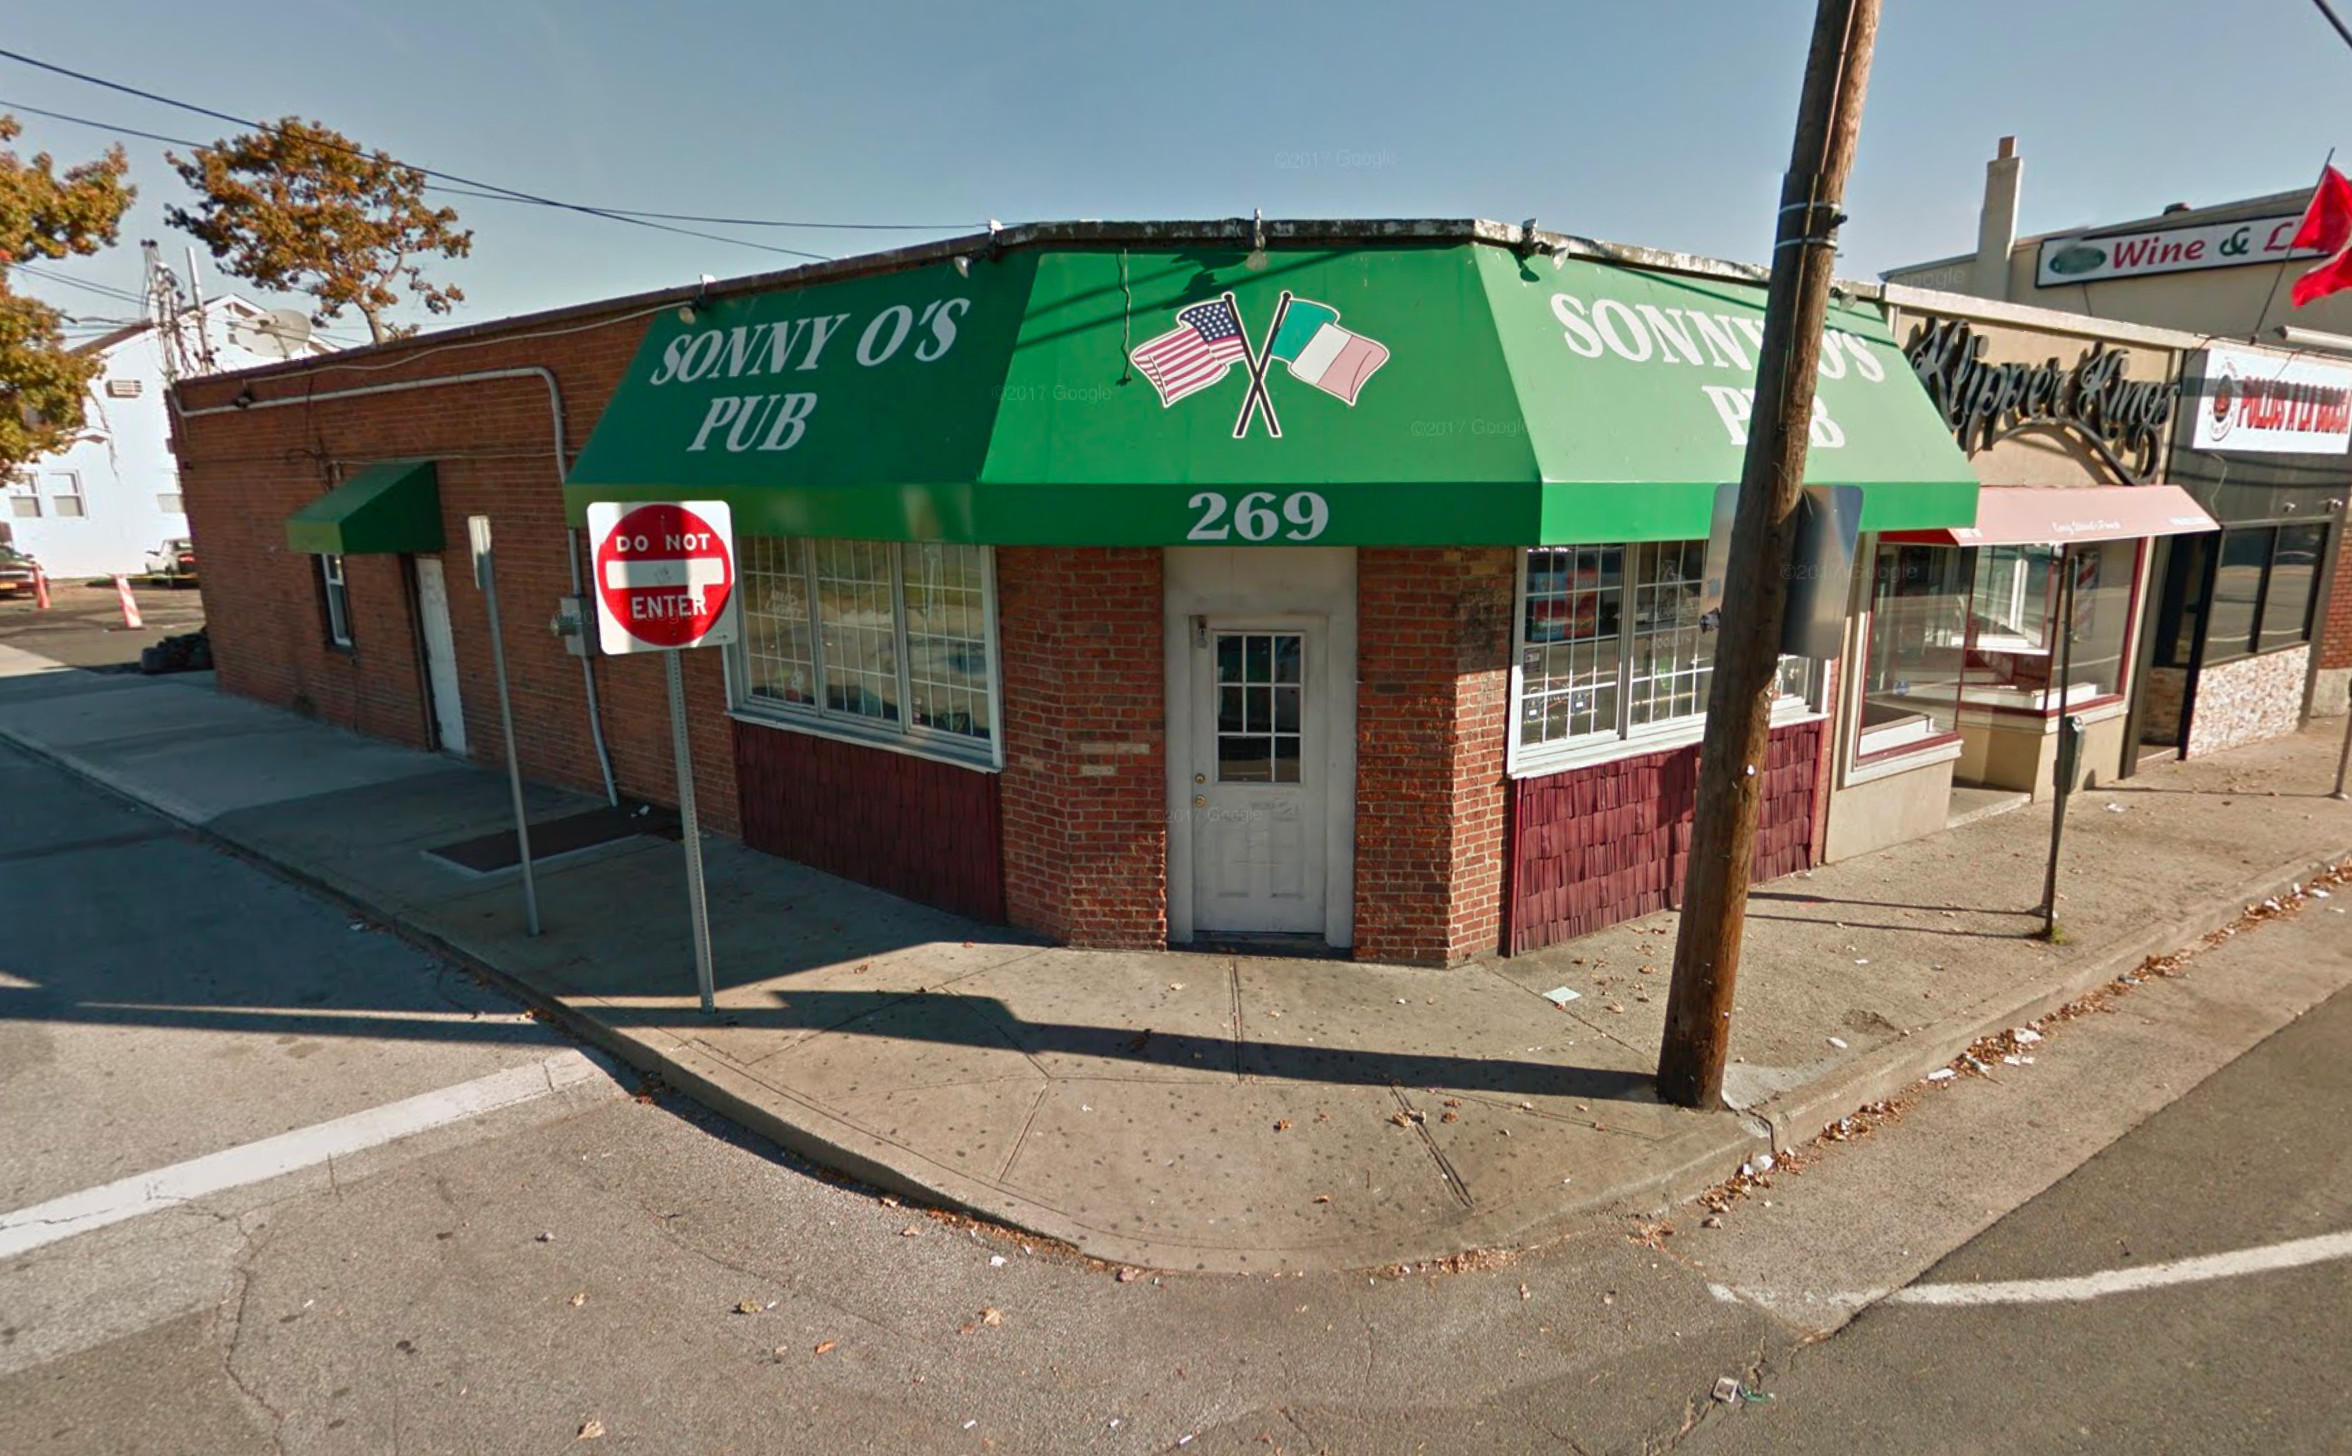 The man was found outside Sonny O's Pub, at 269 West Merrick Road, early Monday morning.